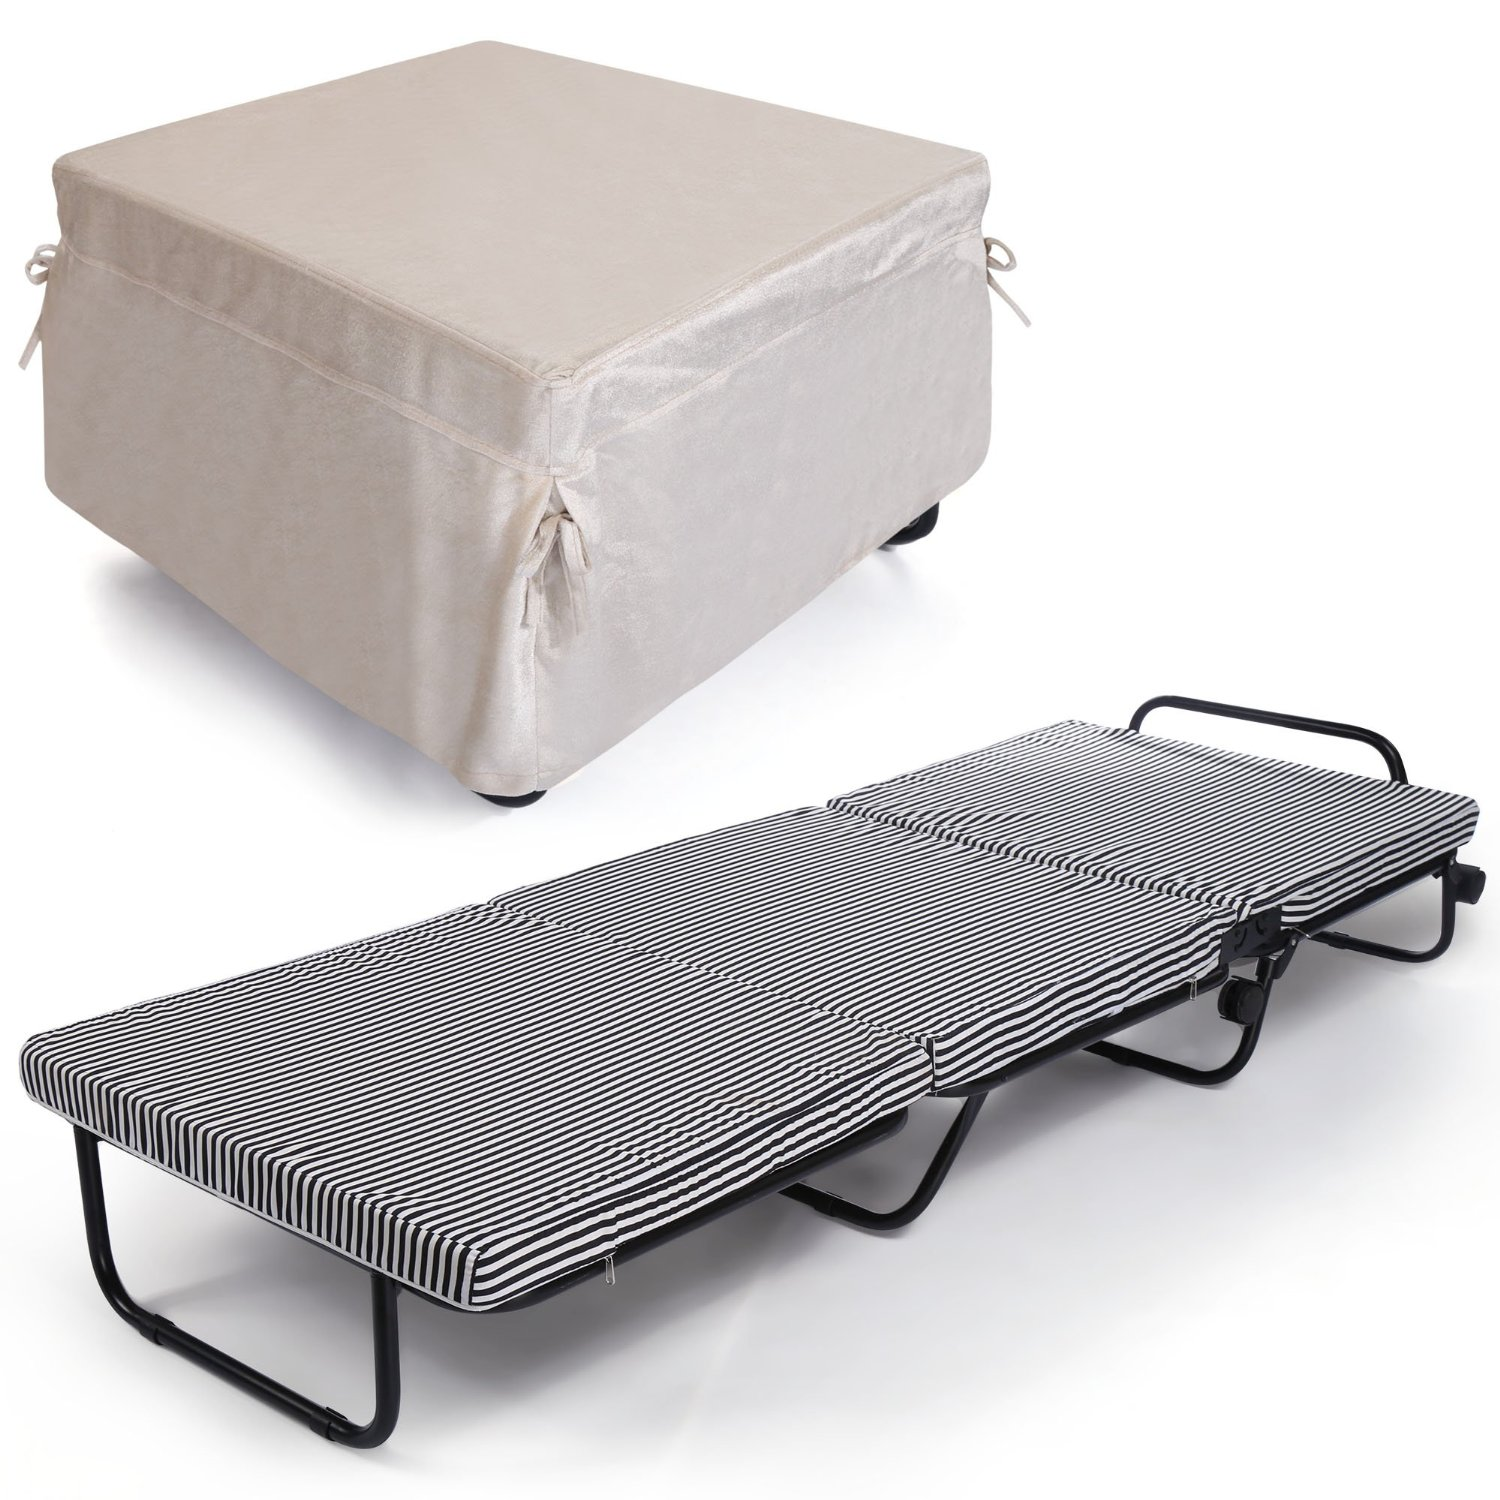 Buy Homdox Folding Bed Tri Fold Portable Sleeping Cot With Memory